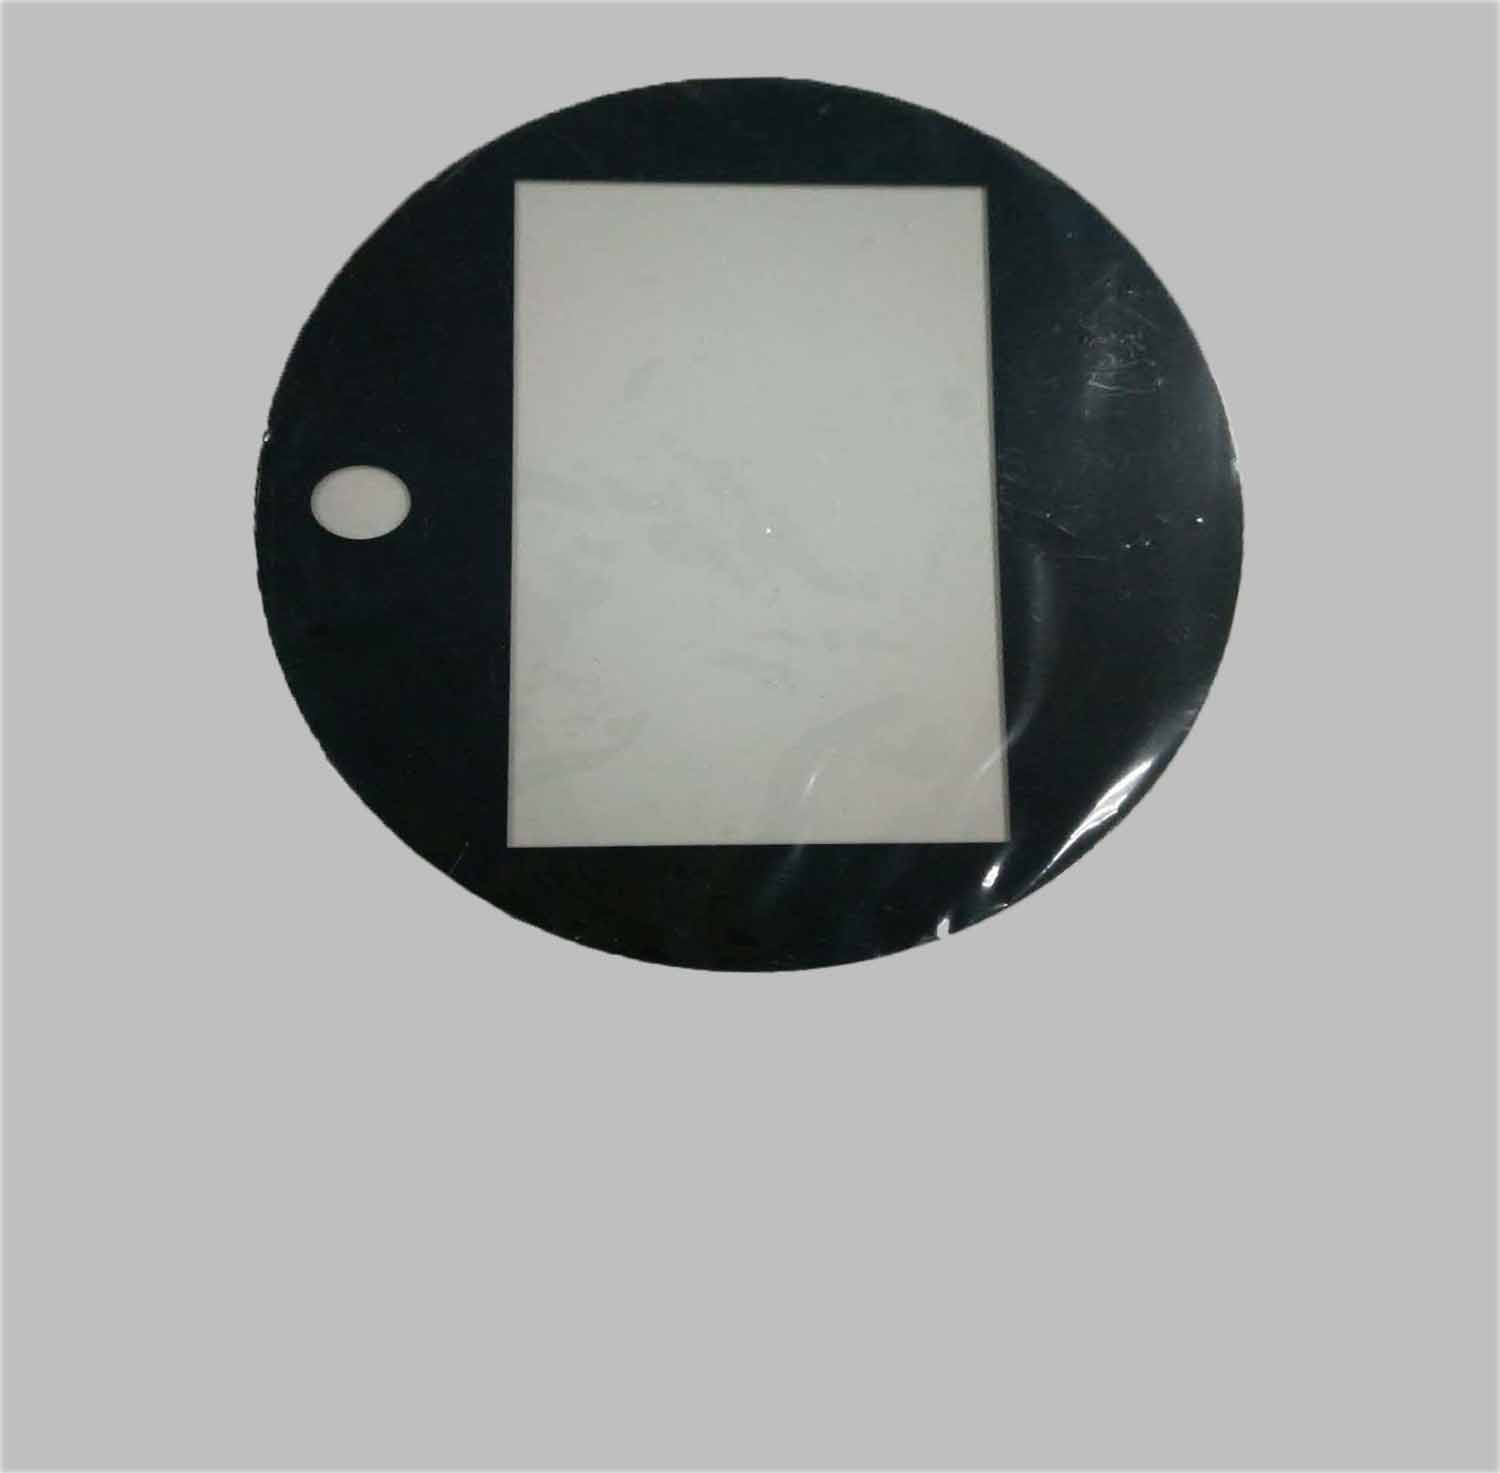 Circular capacitive touch panel-CTP/PCT